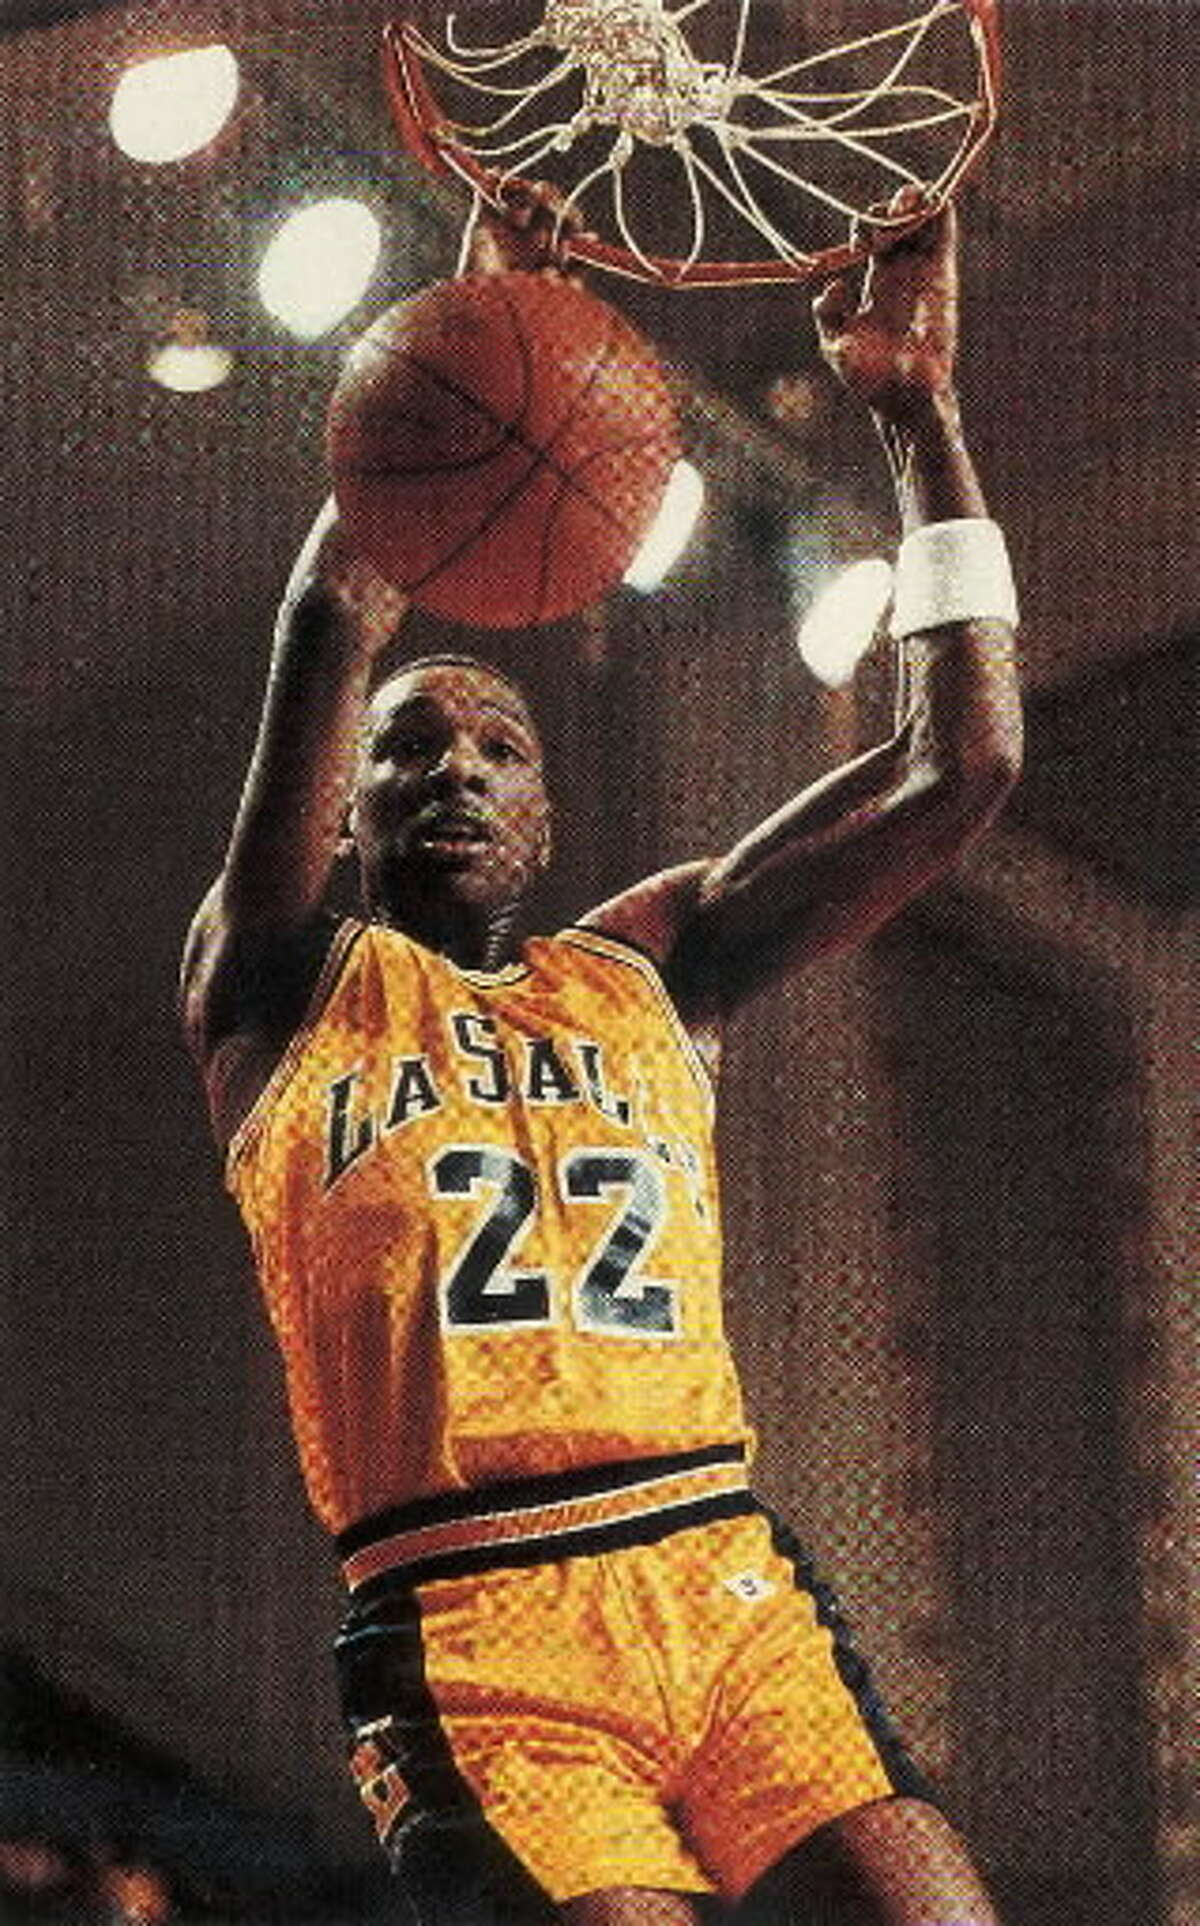 Former La Salle great Lionel Simmons led the Explorers to the 1990 Metro Atlantic Athletic Conference title at Knickerbocker Arena in Albany. (Times Union archive)